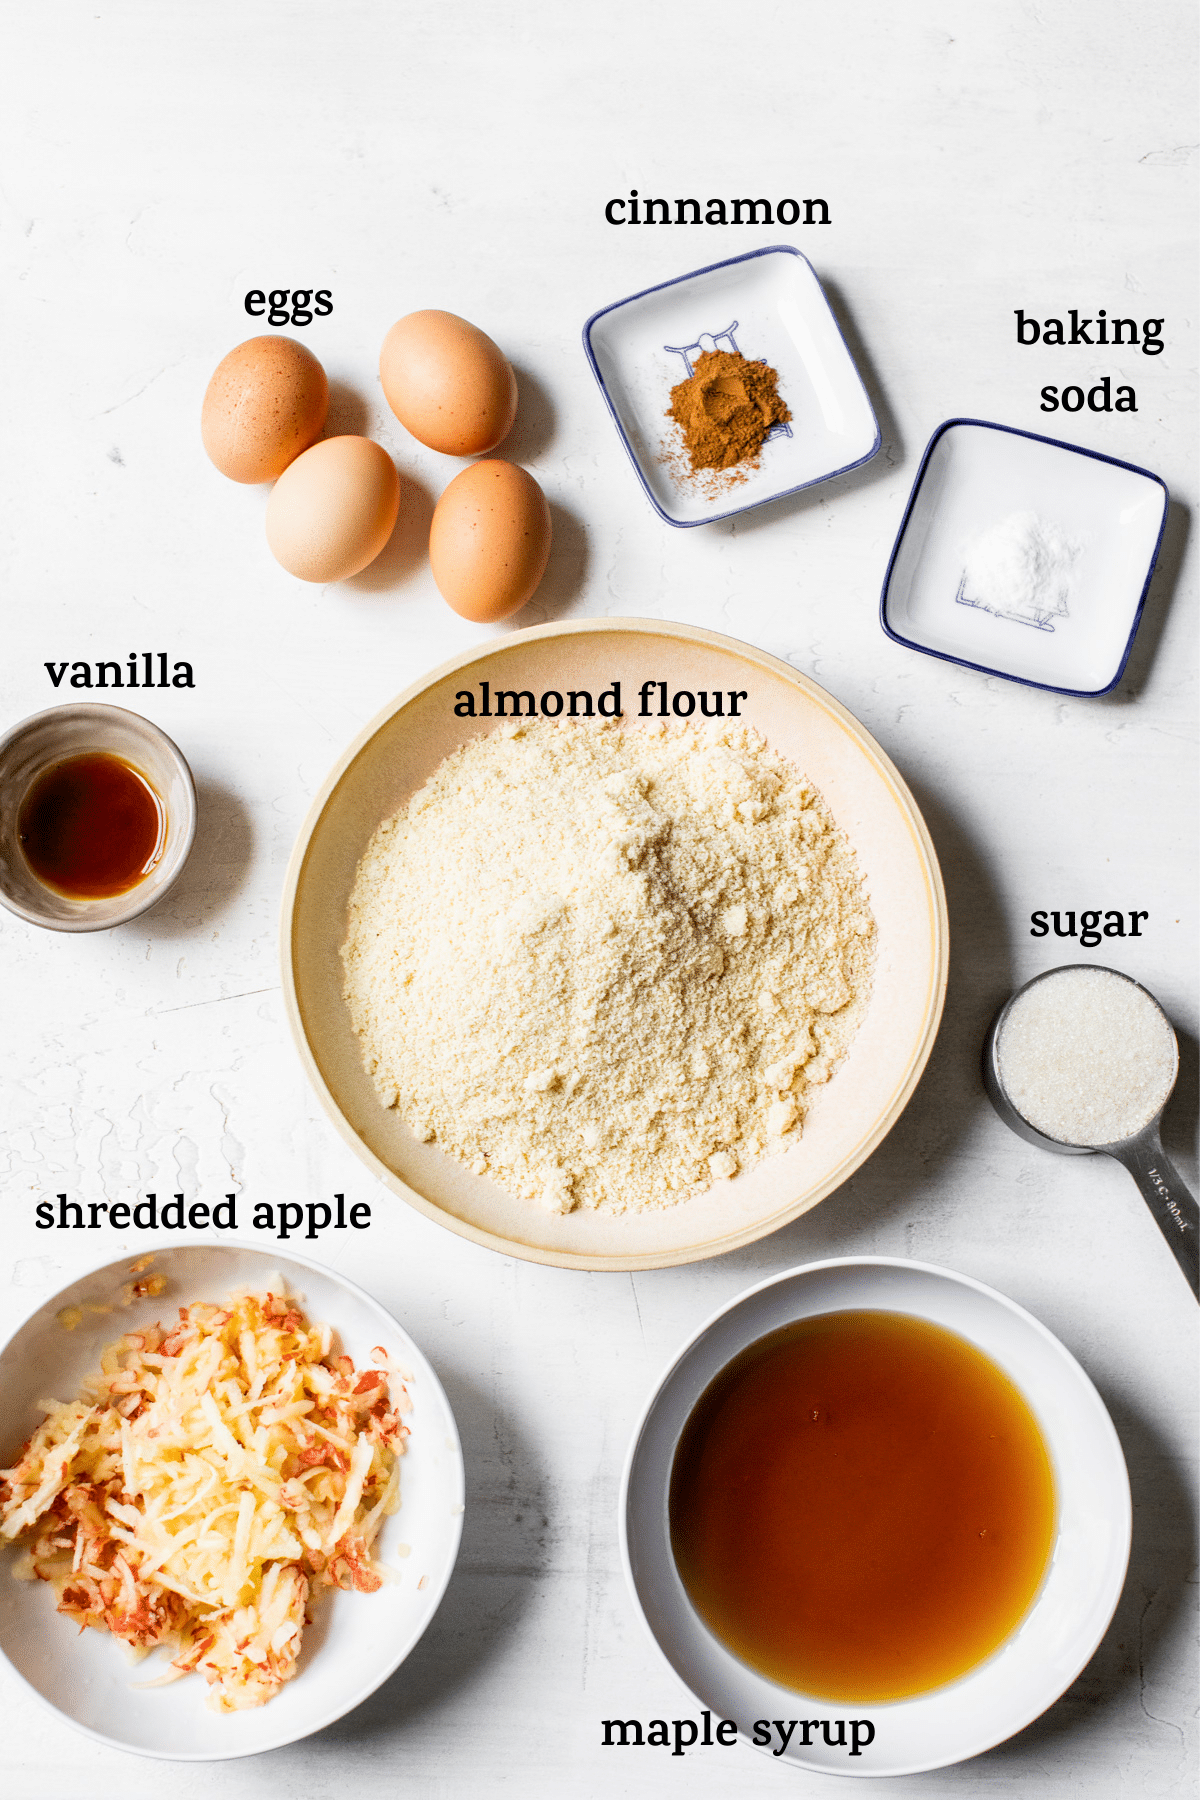 cupcake ingredients with text overlay